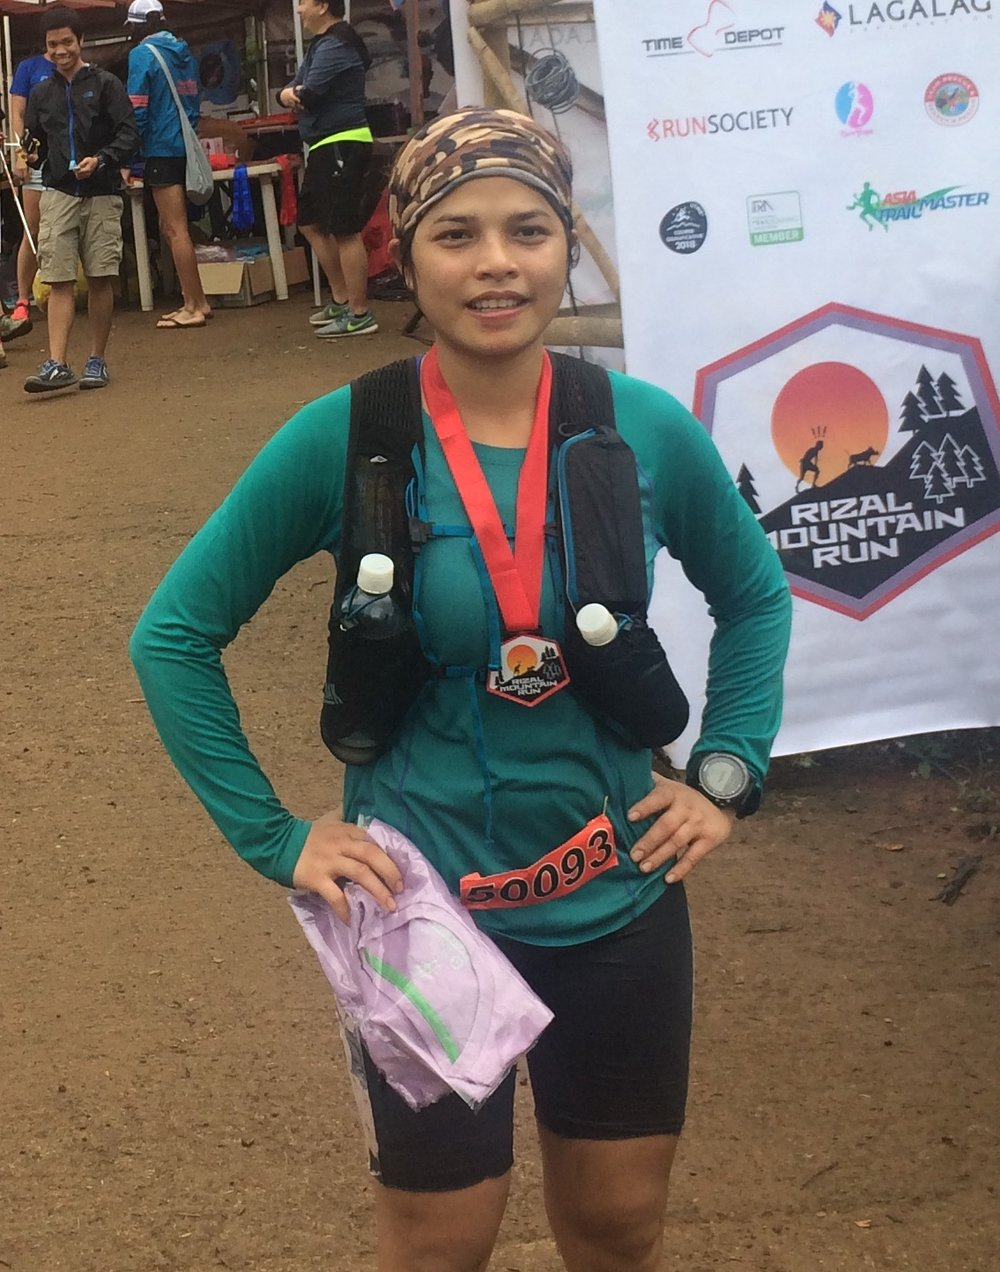 Aggy Smith Sabanal: back in action already after winning Rizal Mountain Run last weekend